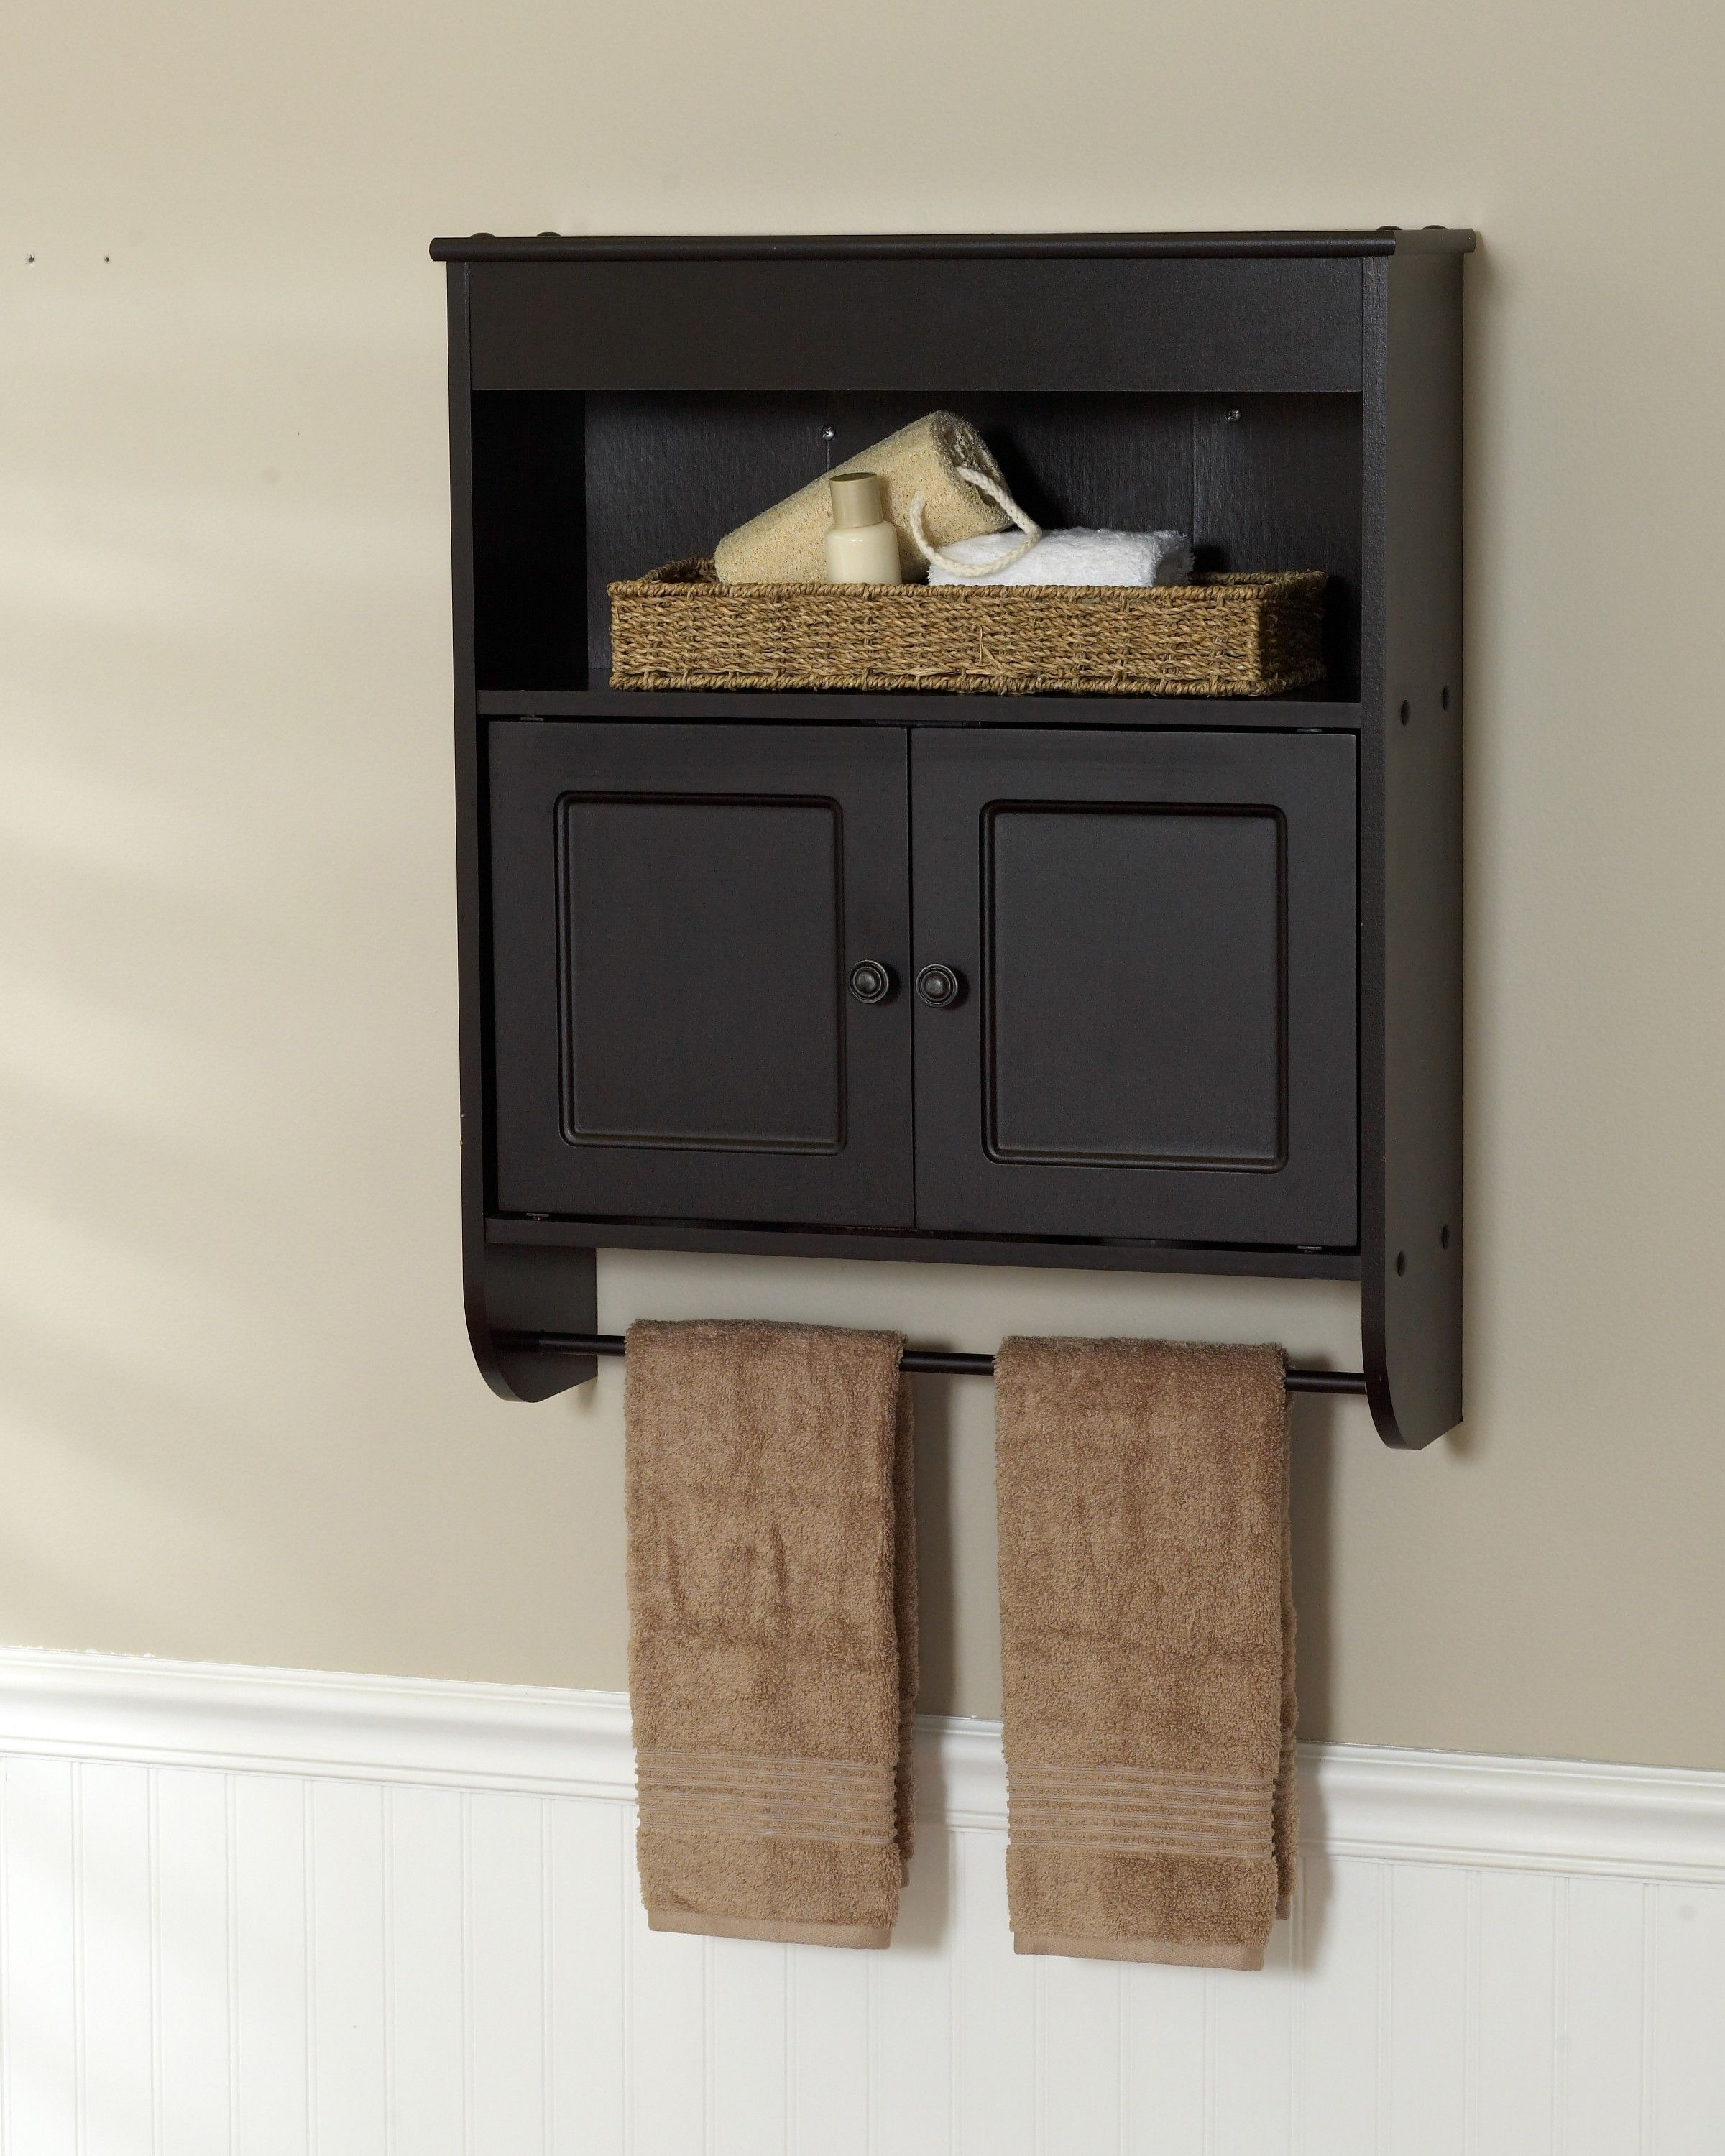 Espresso Cabinet with Towel Bar - Zenith Home Corp. (ZPC ...